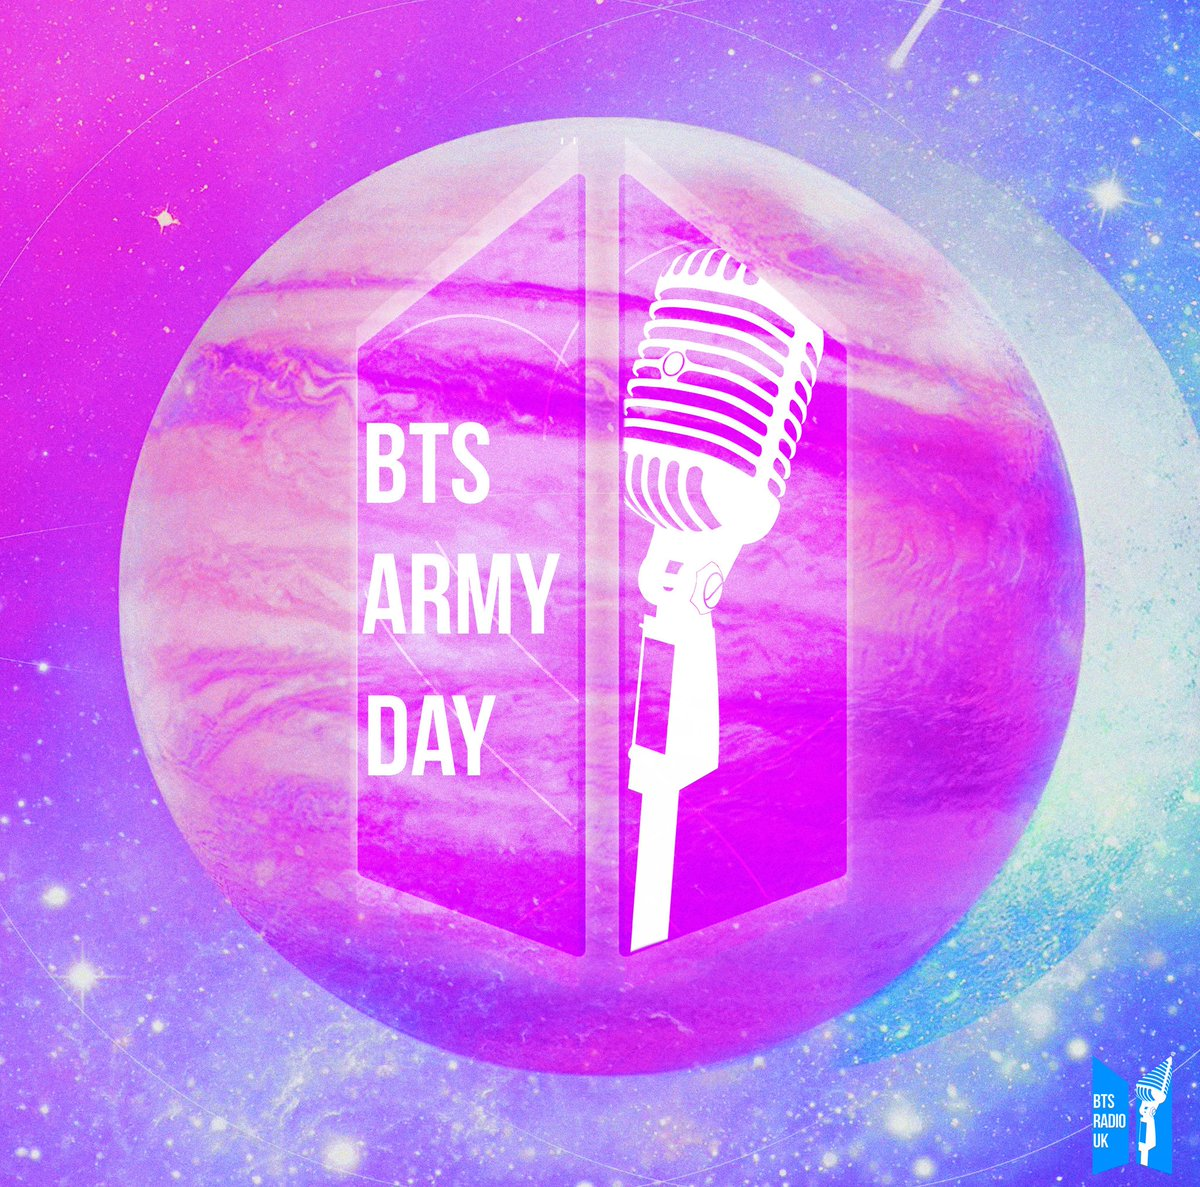 Happy anniversary to #BTSARMY,  @BTS_twt brought together people from all over world. Uniting us, a family full of diversity and rich experiences.  From @BTSRadioUK team   #armymeansfamily #ArmyDay #BTS6thAnniversary  #아미_6주년_축하해<br>http://pic.twitter.com/Z5pw5k3GGd